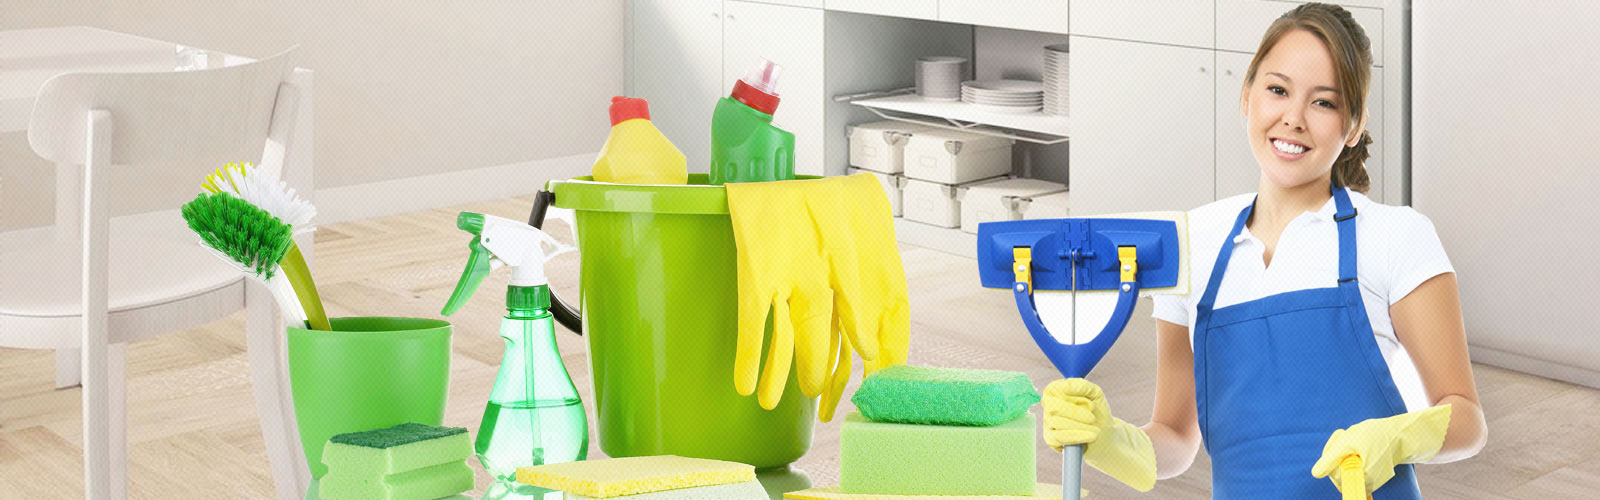 Tips of the end of lease cleaning from that get your bond back